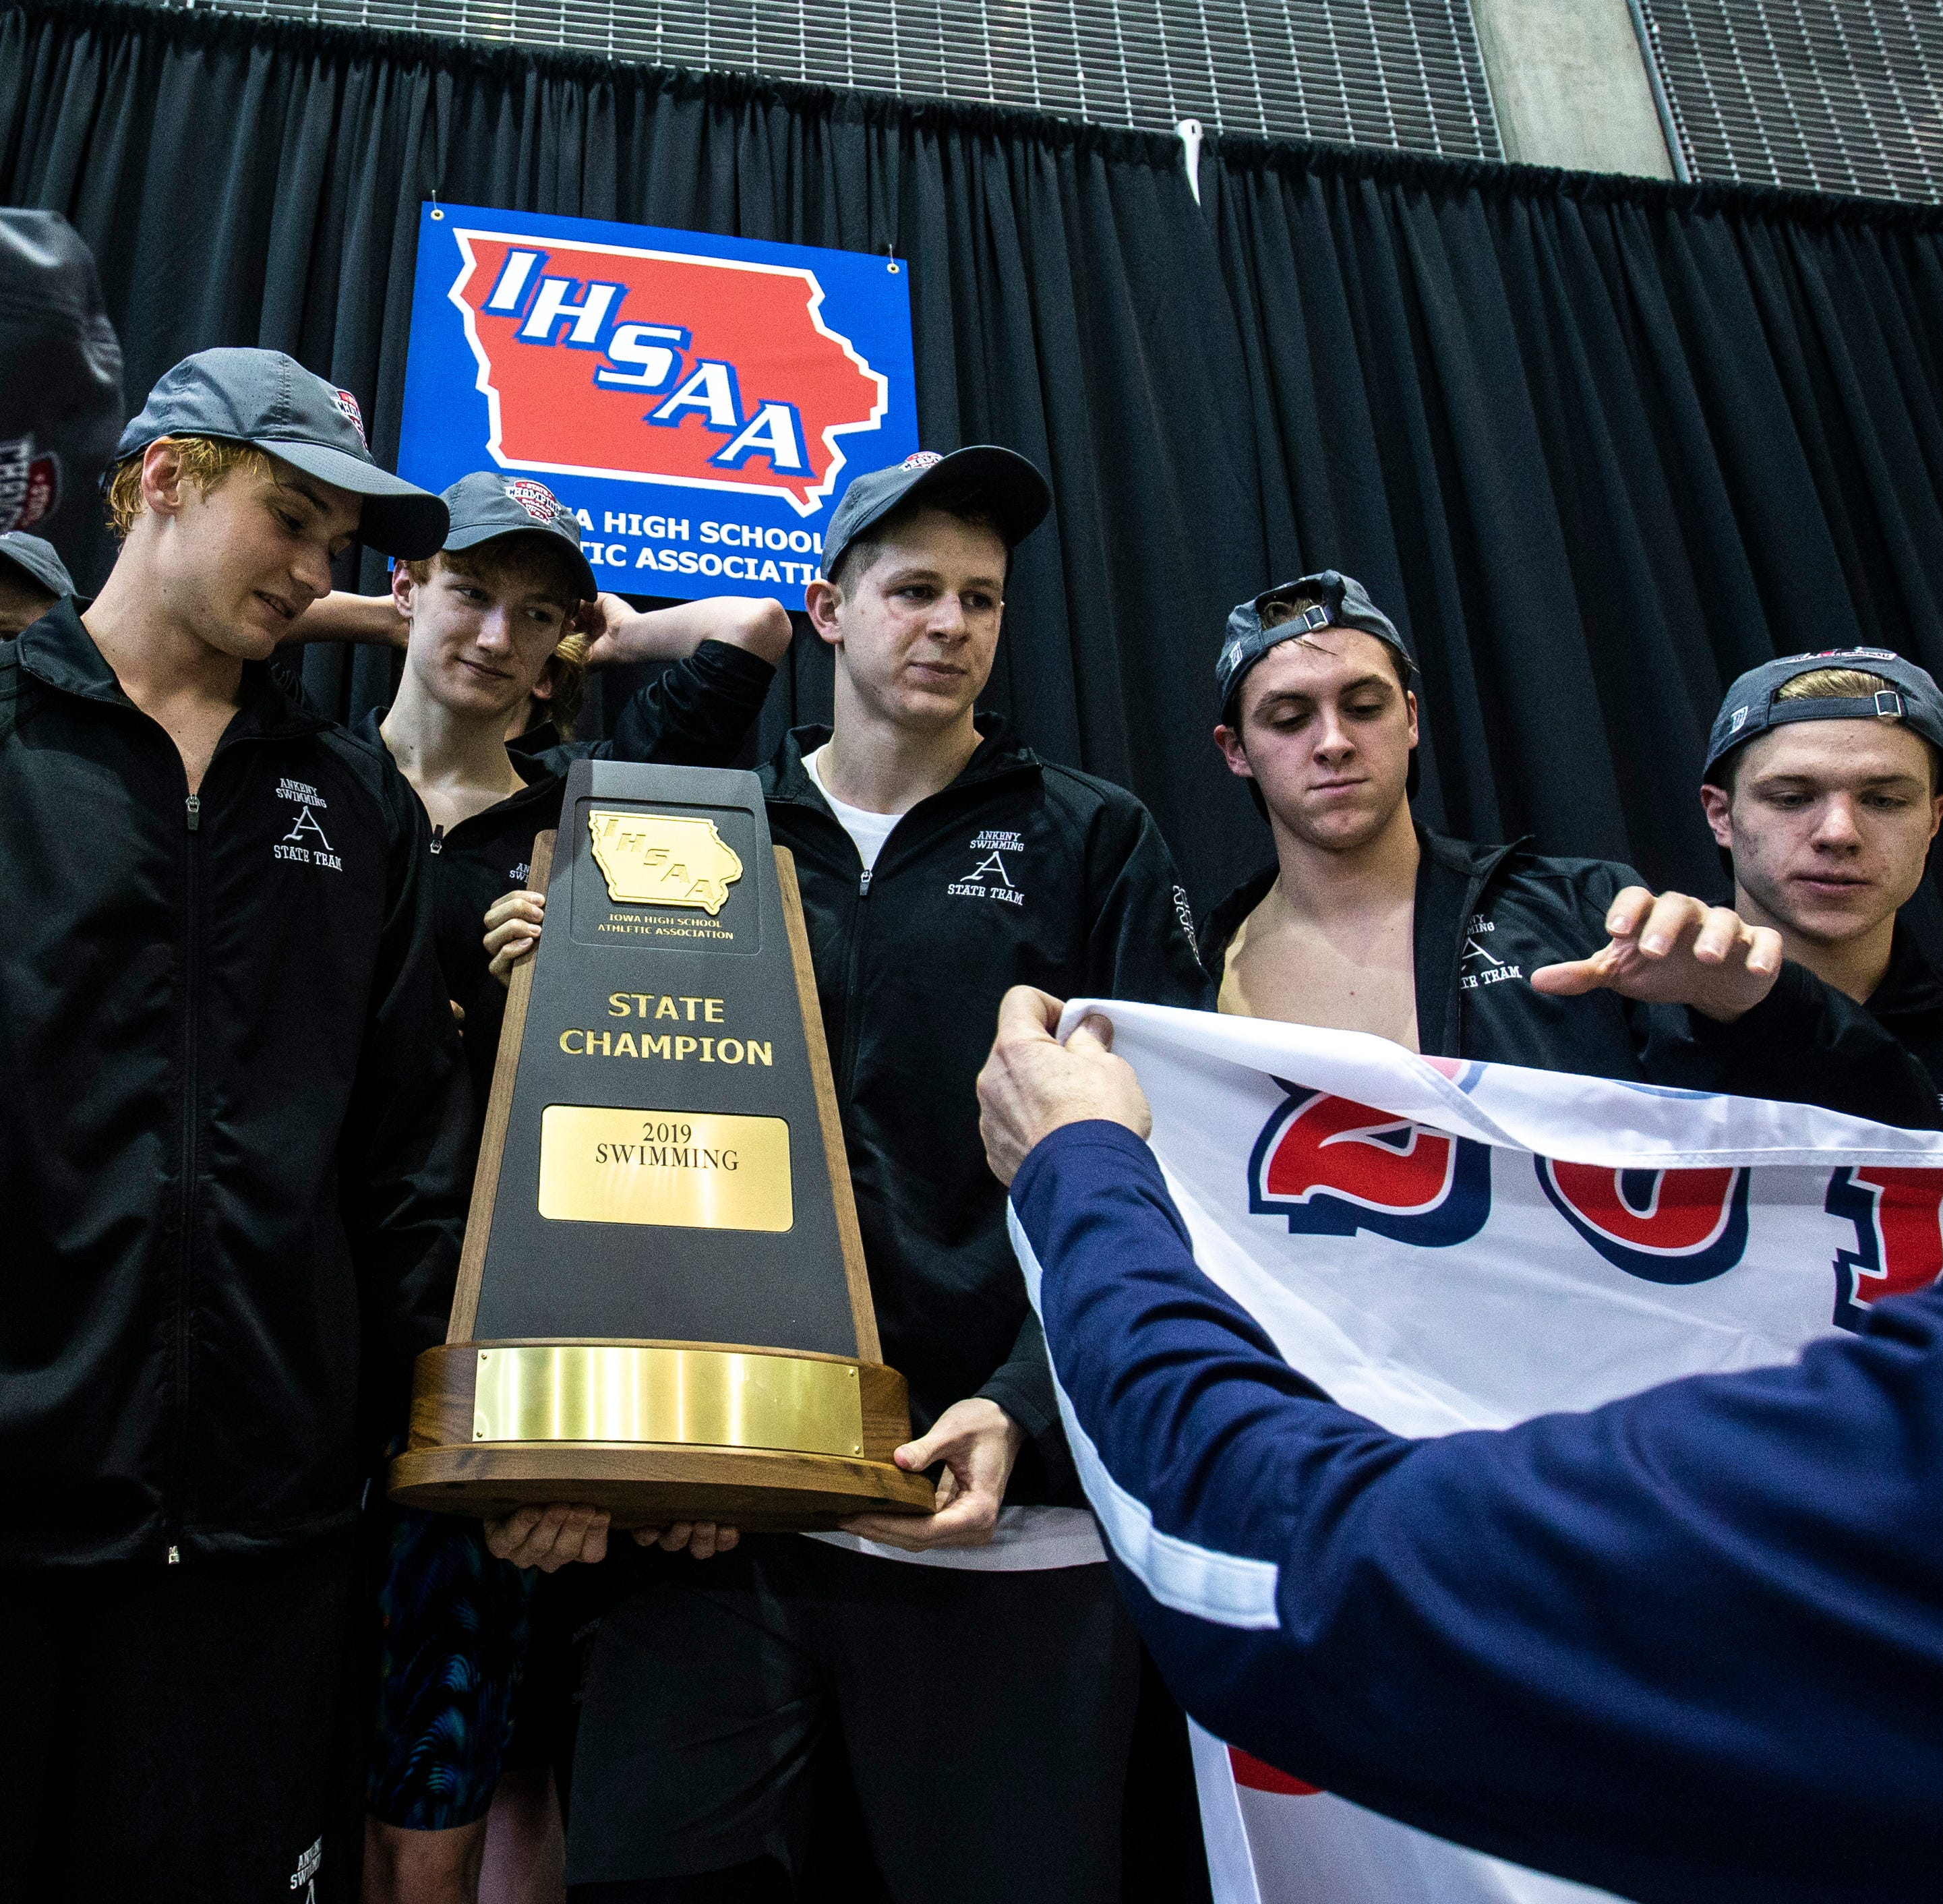 Ankeny clinches program's first boys' state swimming title